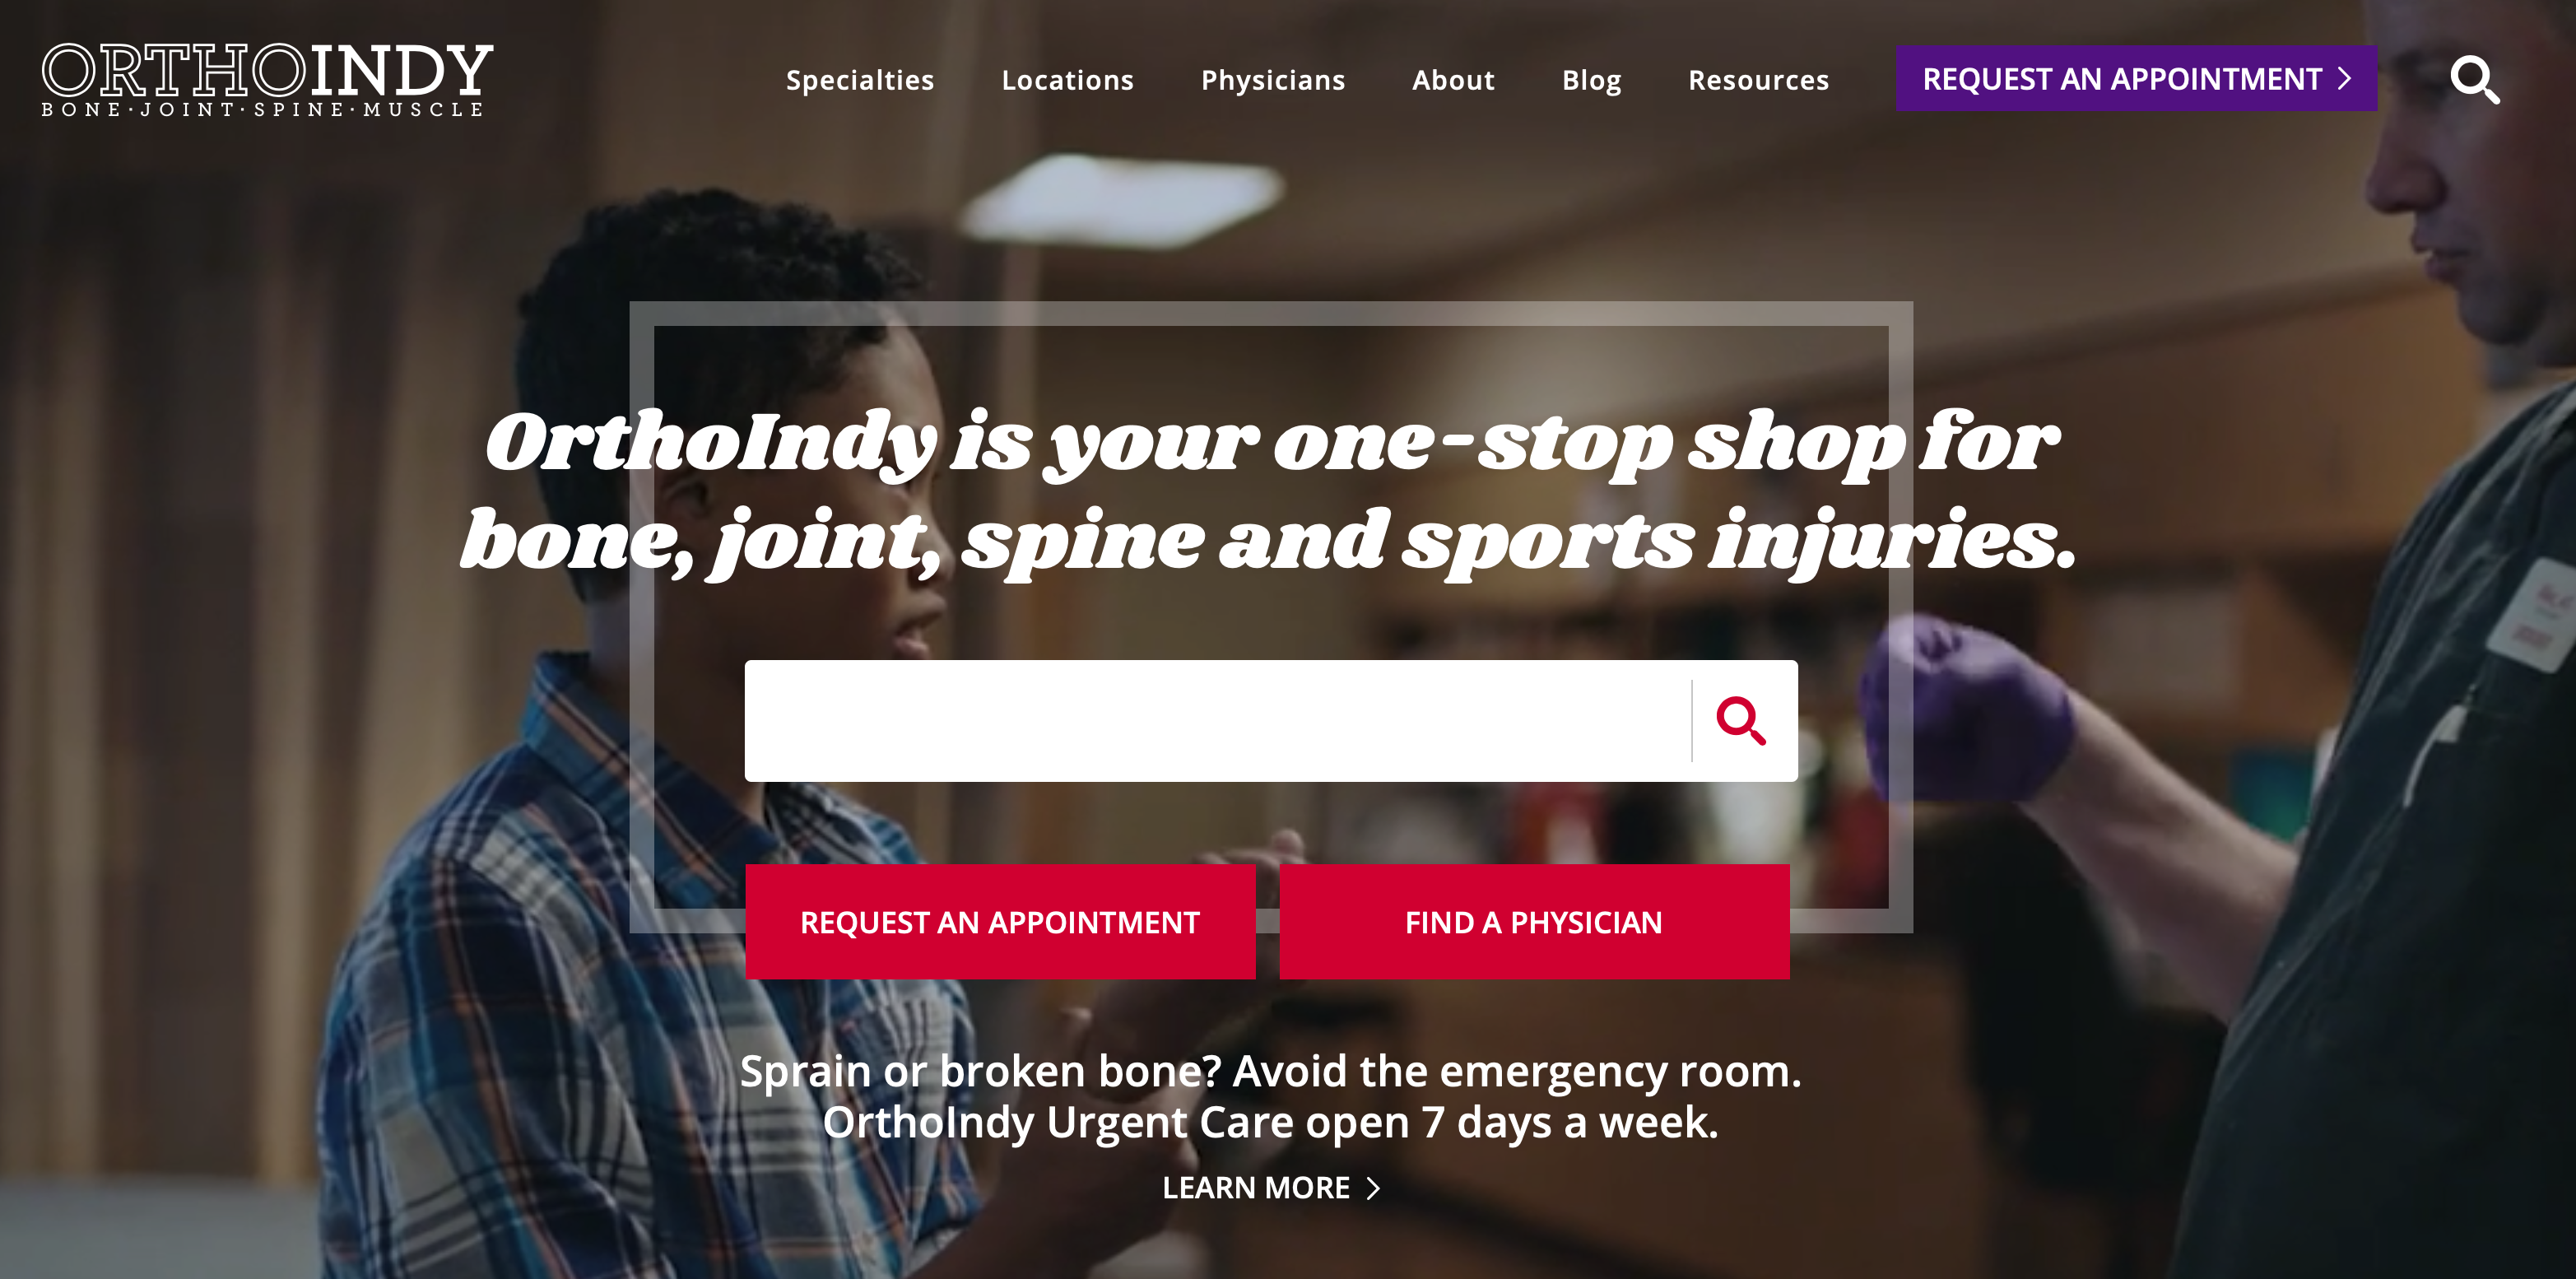 Best Healthcare Website Designs - OrthoIndy Hospital